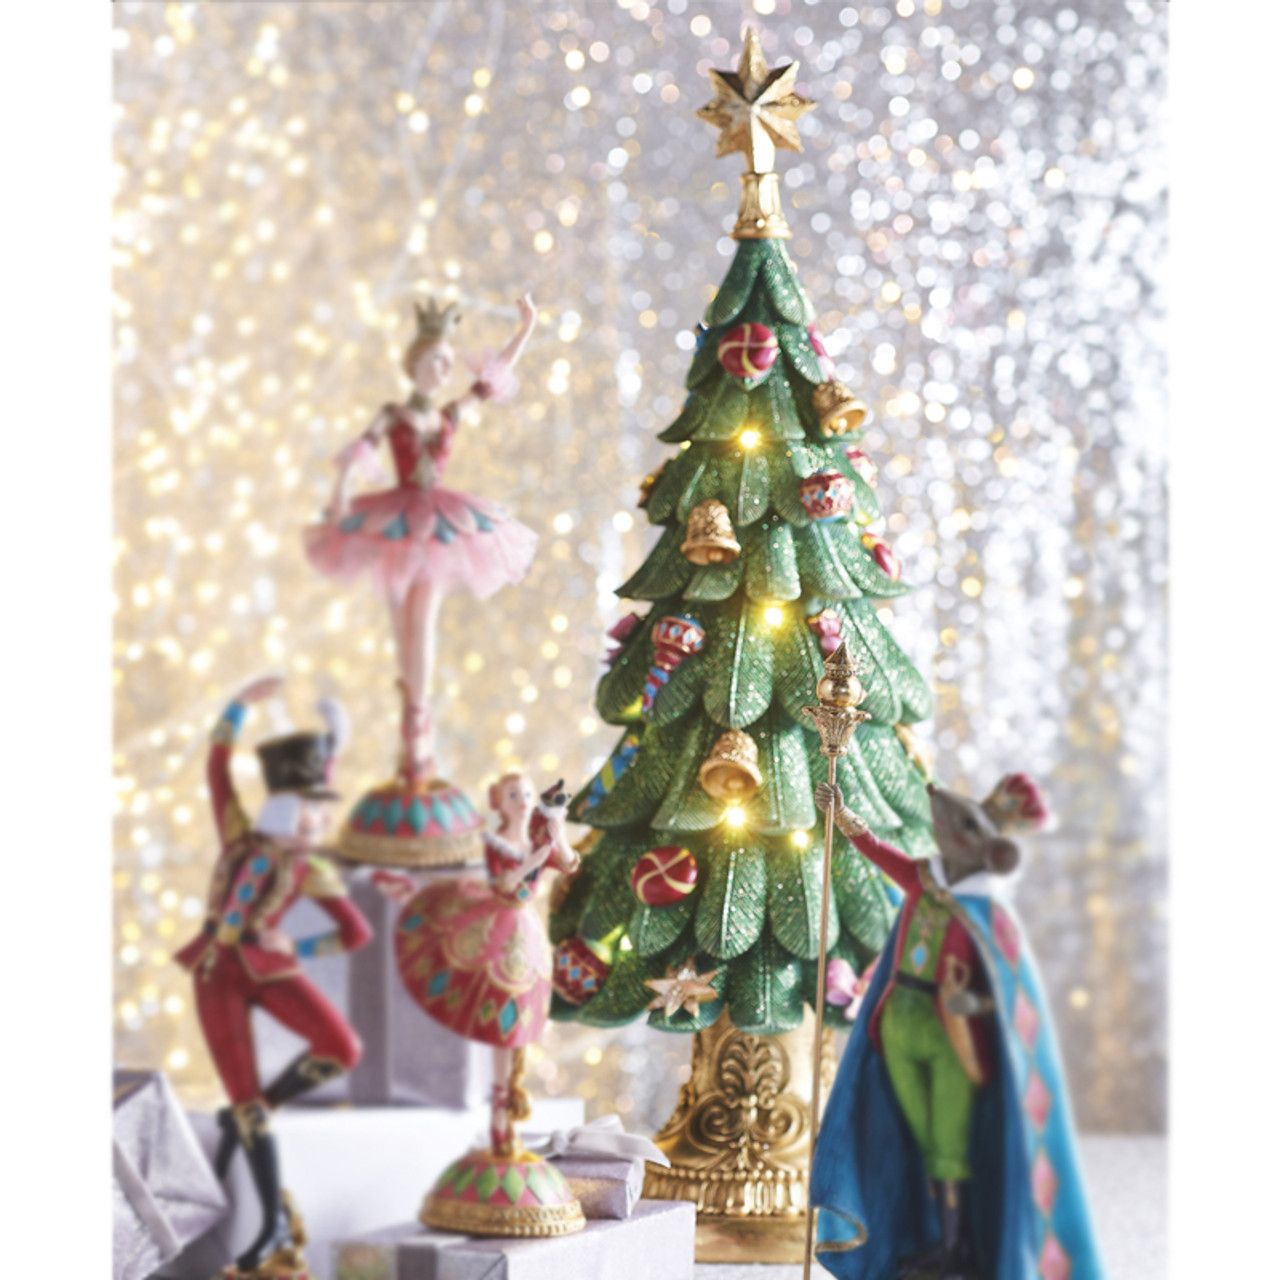 Raz 24 Battery Operated Musical Lighted Christmas Tree Figure Imports Home Deco Decor